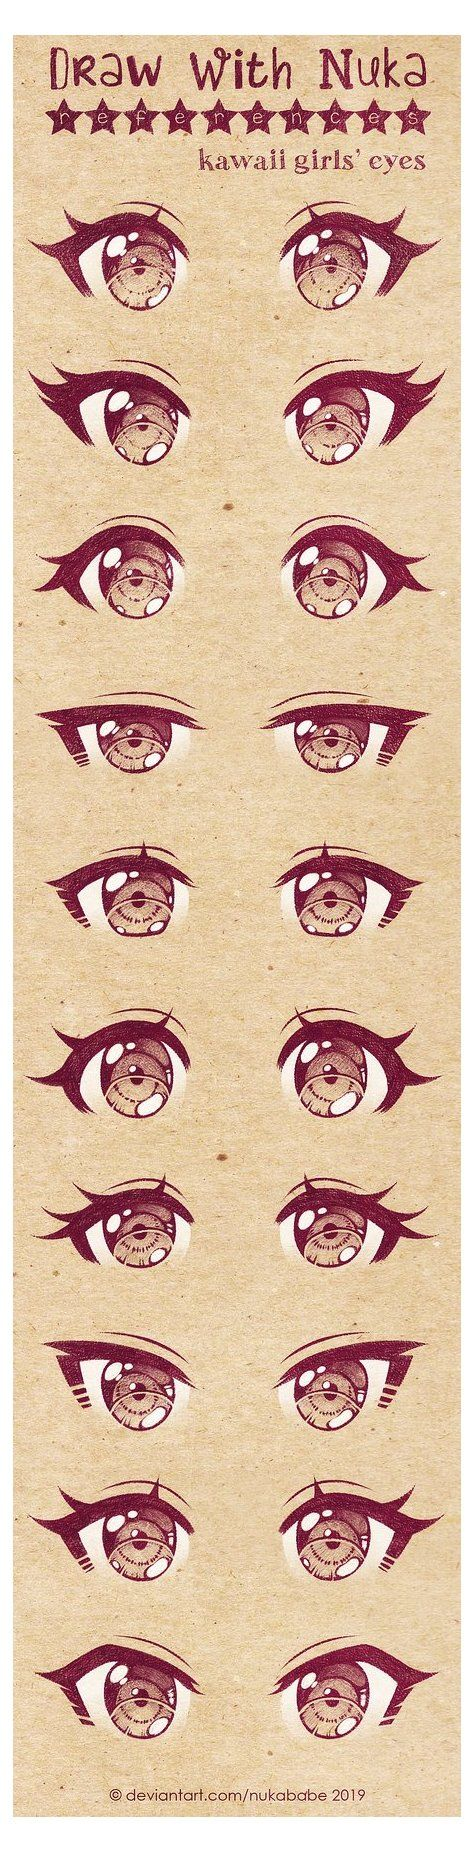 10 Ideas How To Draw Manga Anime Eye Tutorial 10 Concepts How To